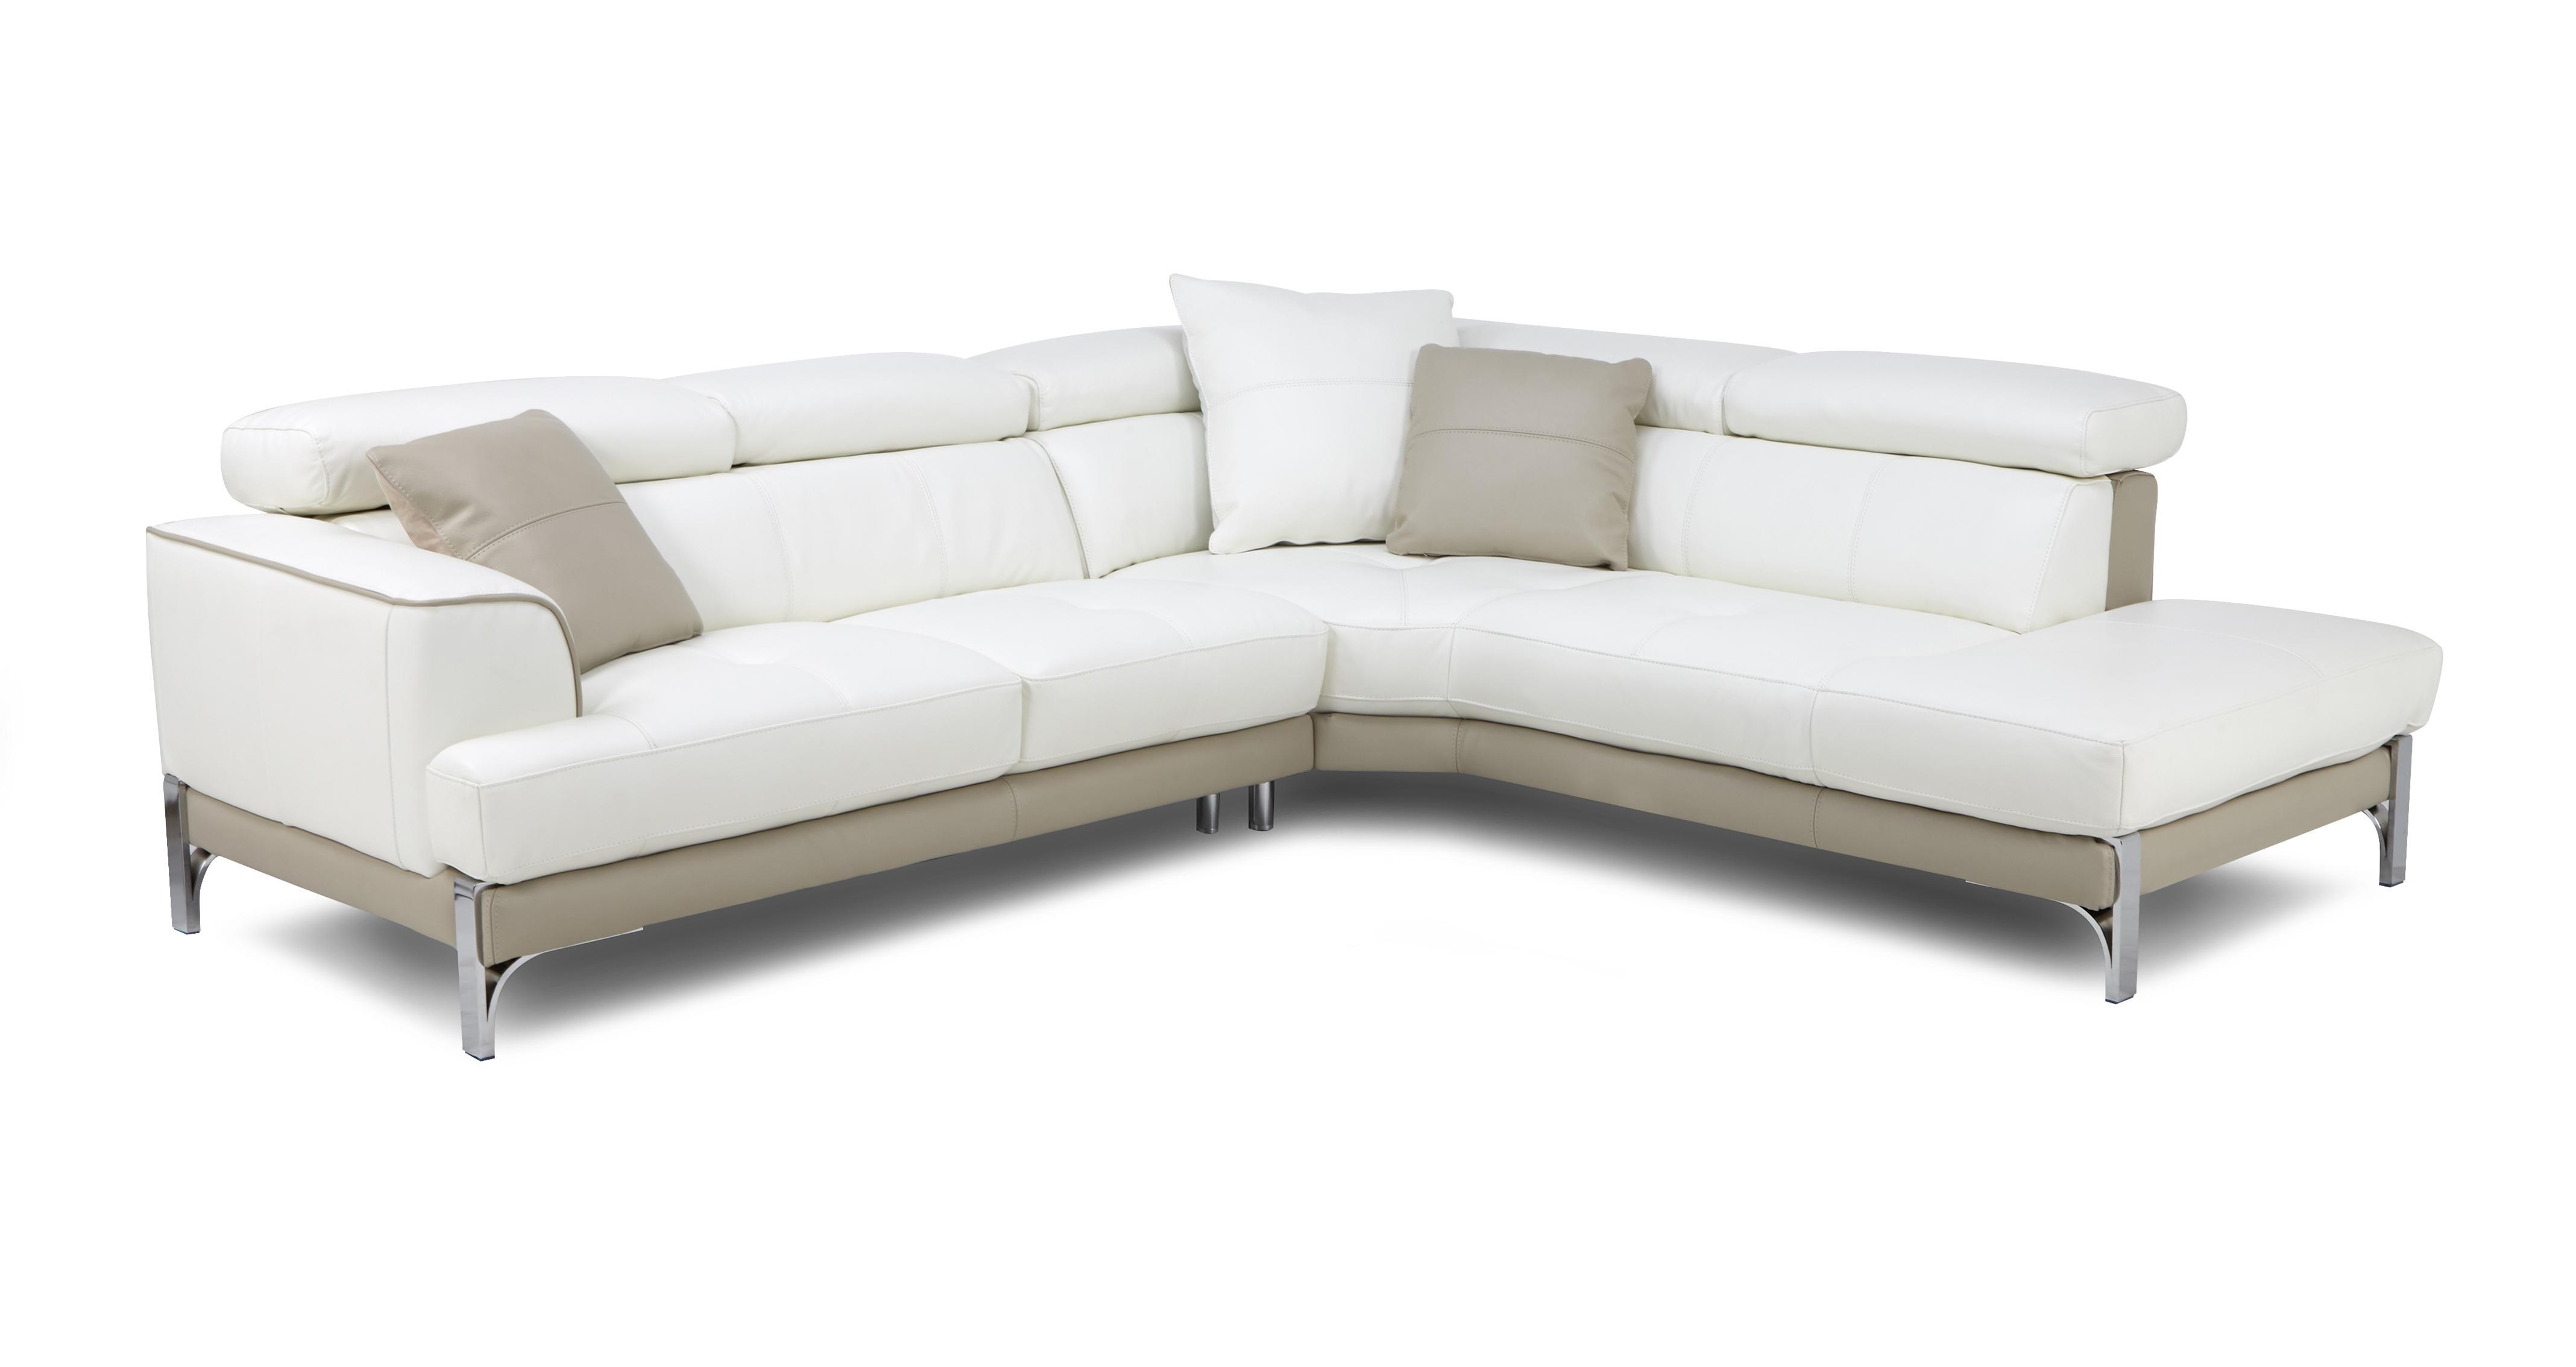 really small corner sofas sofa storage dundee stage left arm facing new club dfs spain